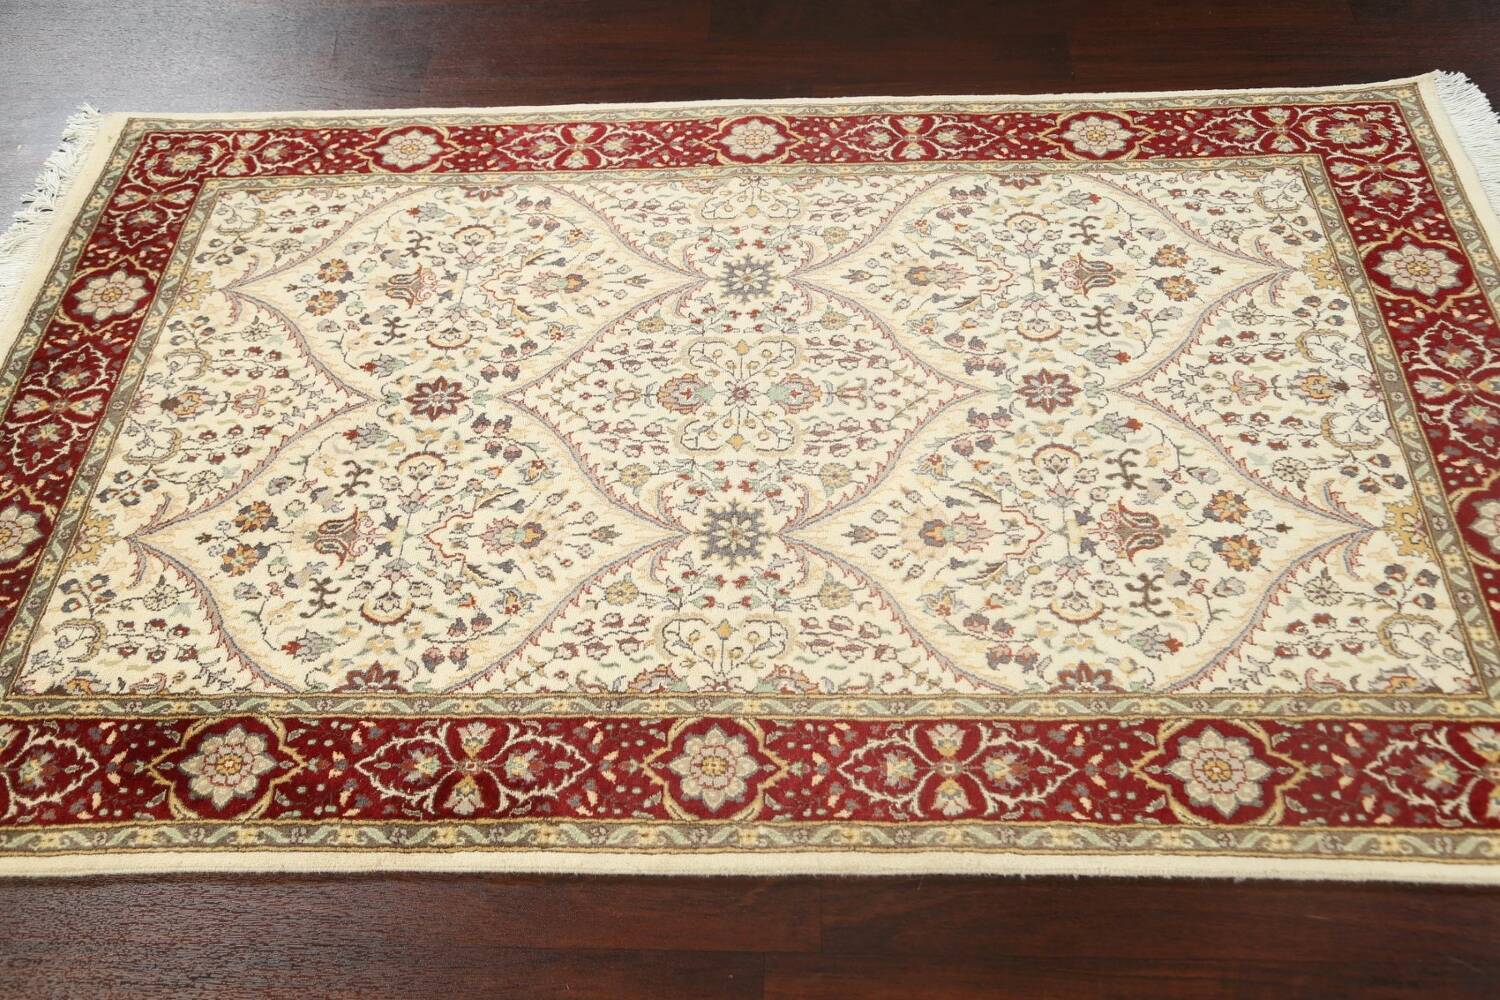 100% Vegetable Dye Floral Tabriz Oriental Area Rug 4x6 image 12